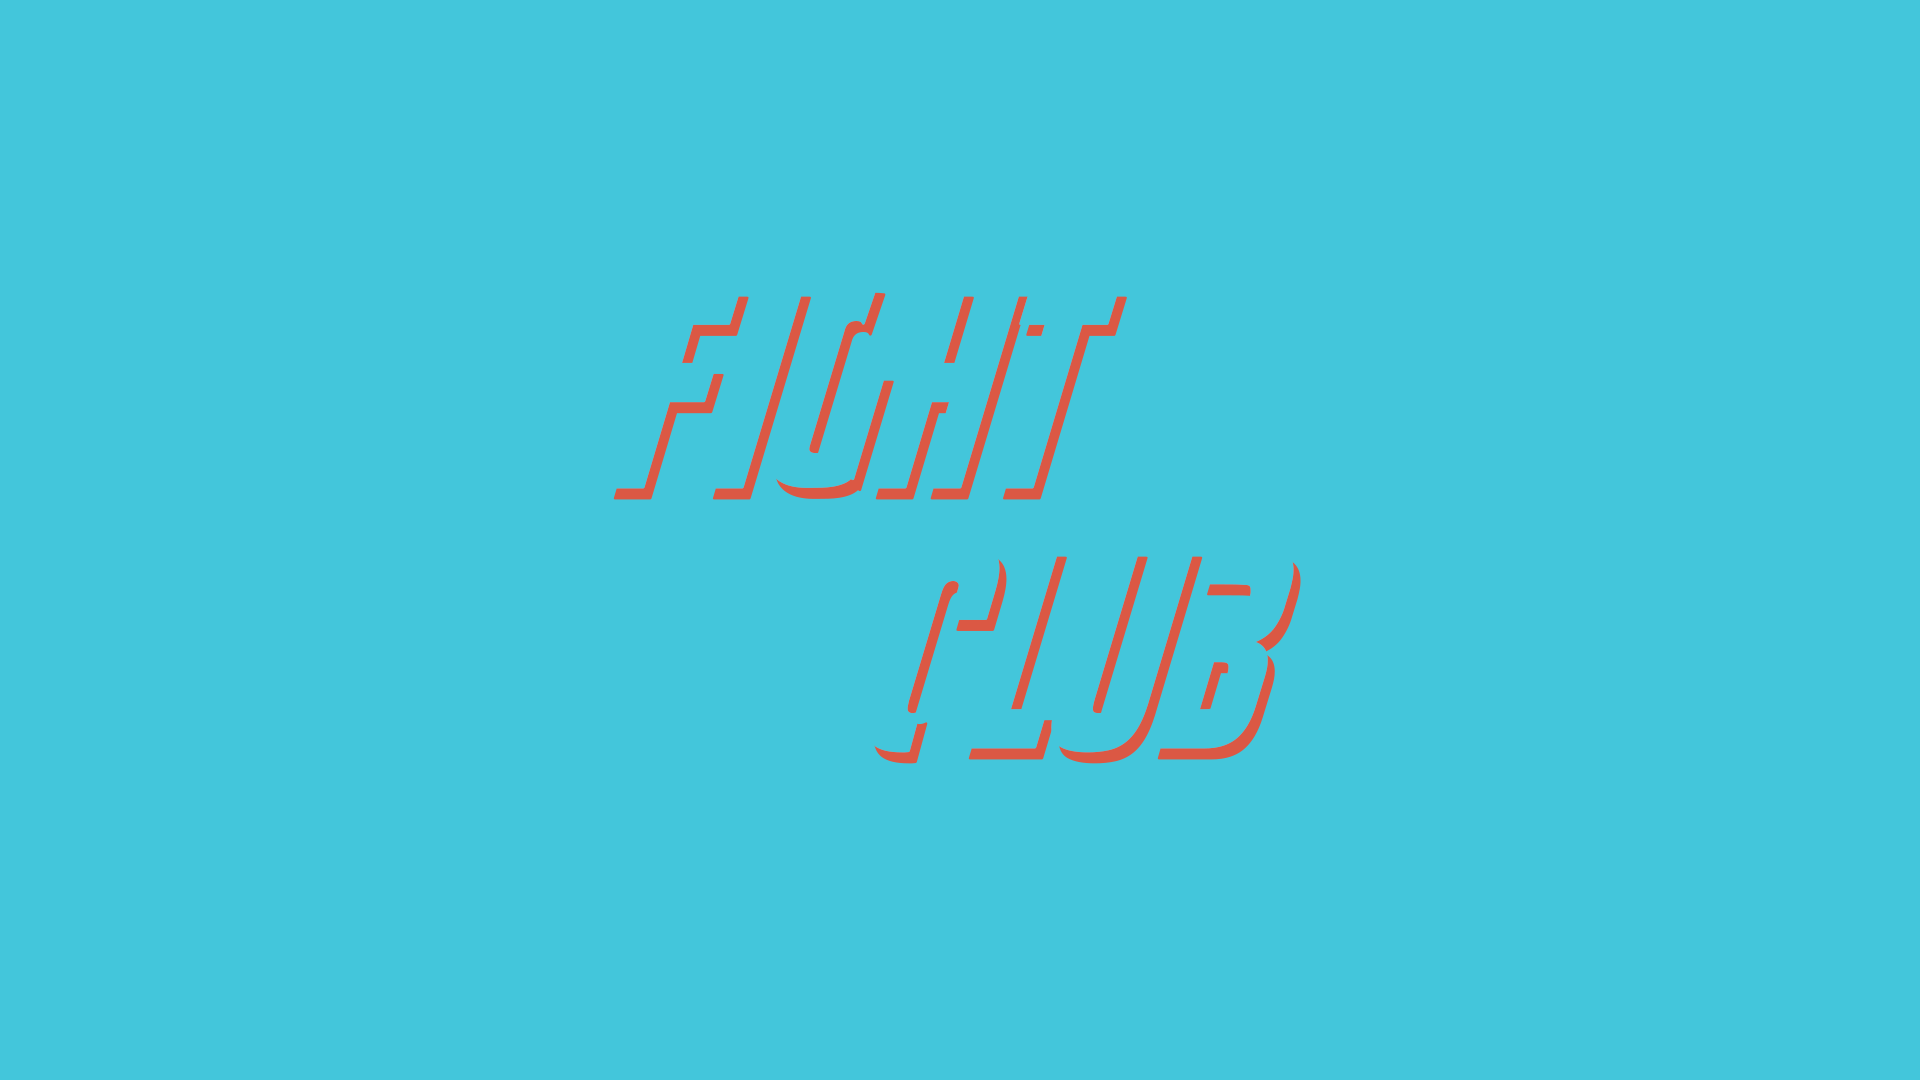 Fight-Club-1920x1080-Followme-CooliPhoneCase-on-Twitter-Facebook-Google-Instagram-LinkedI-wallpaper-wp3805275